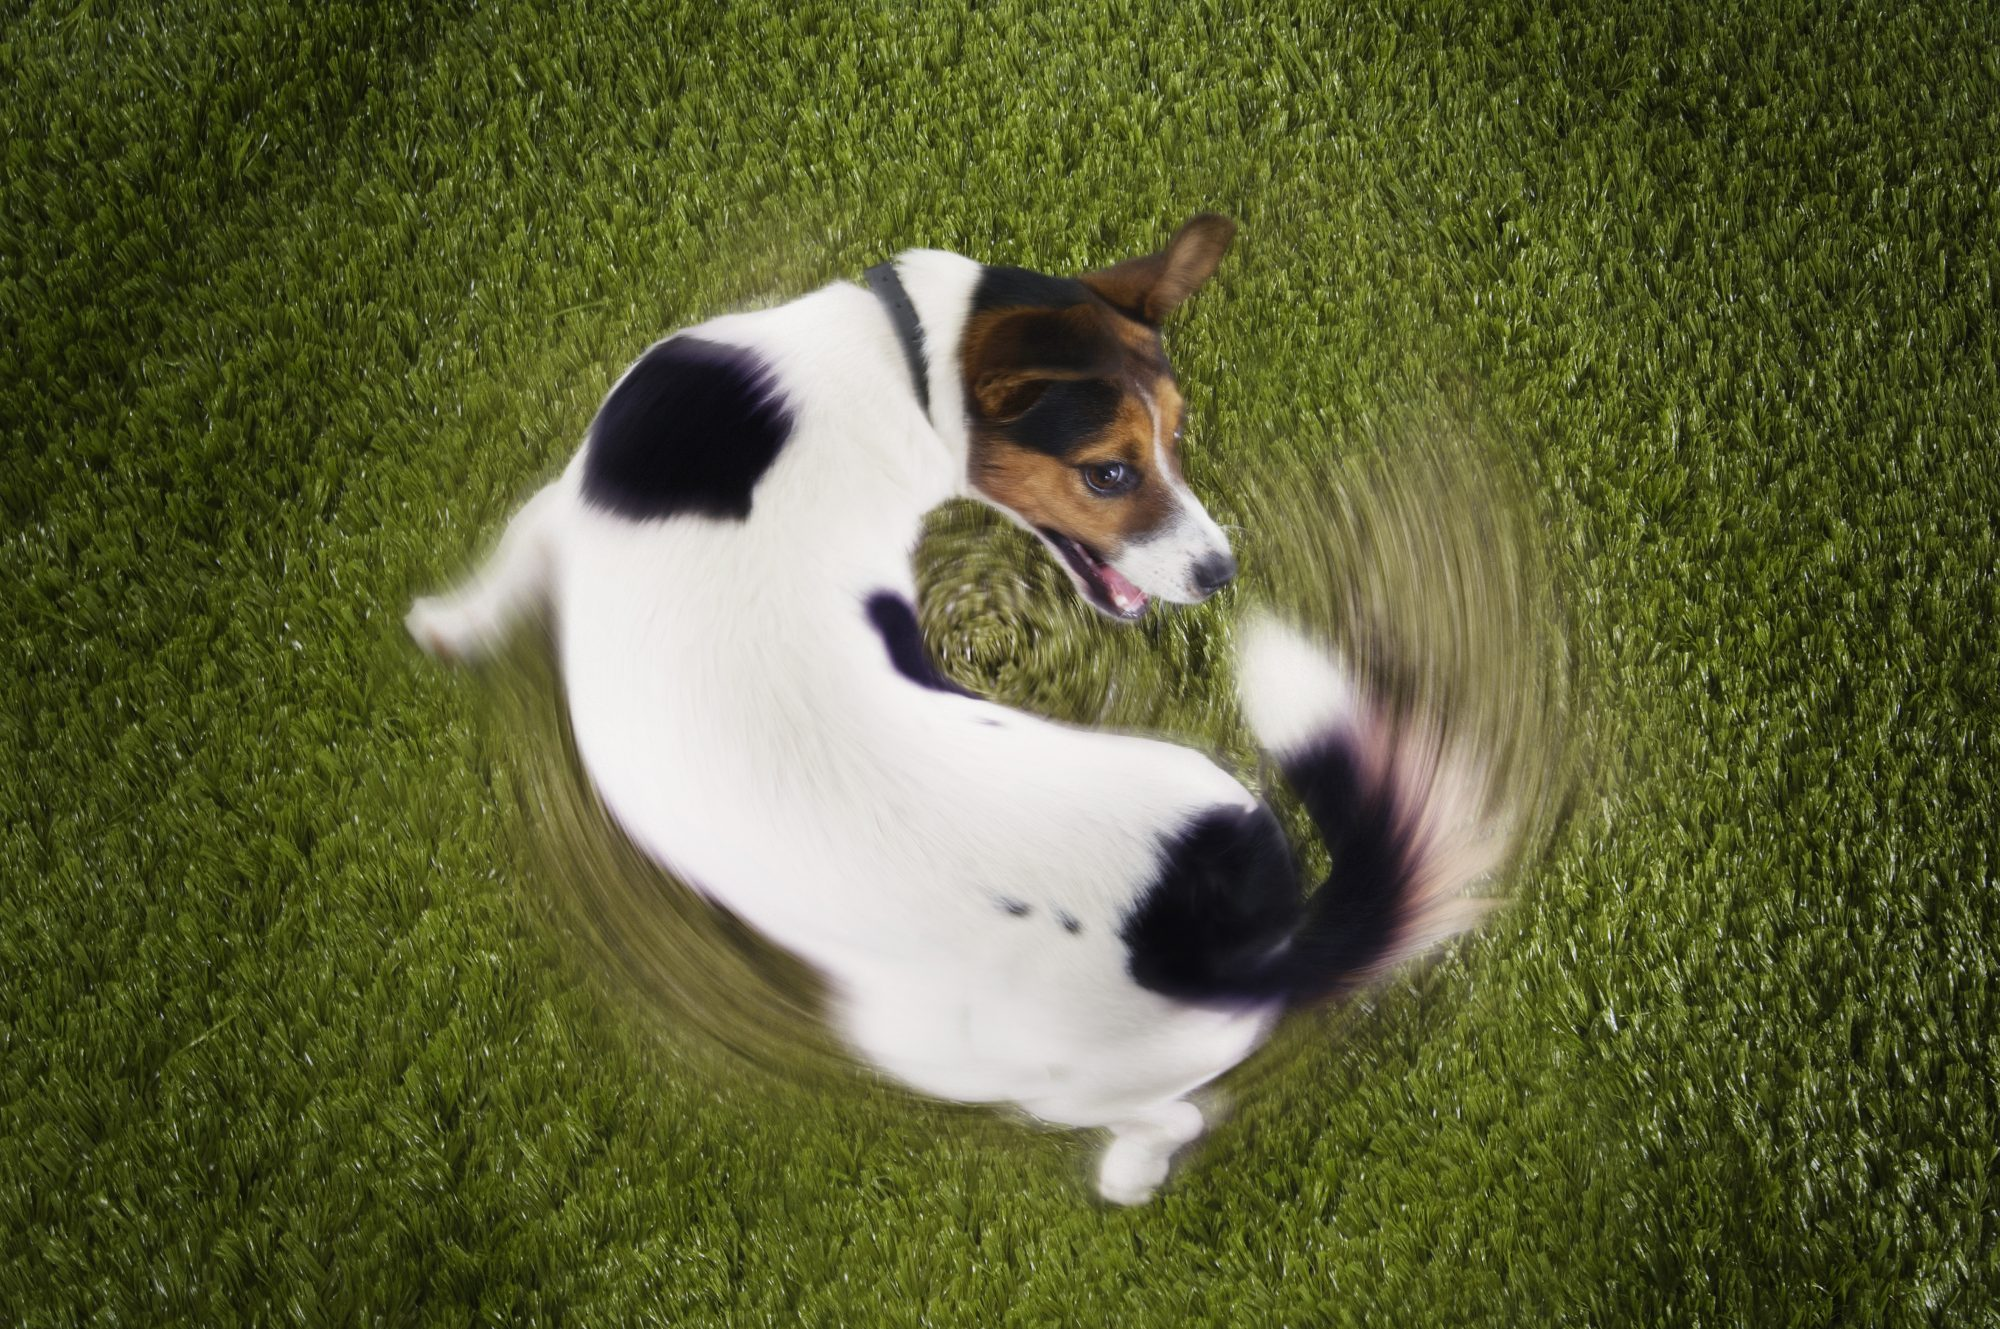 Jack Russell Terrier Dog Chasing Own Tail